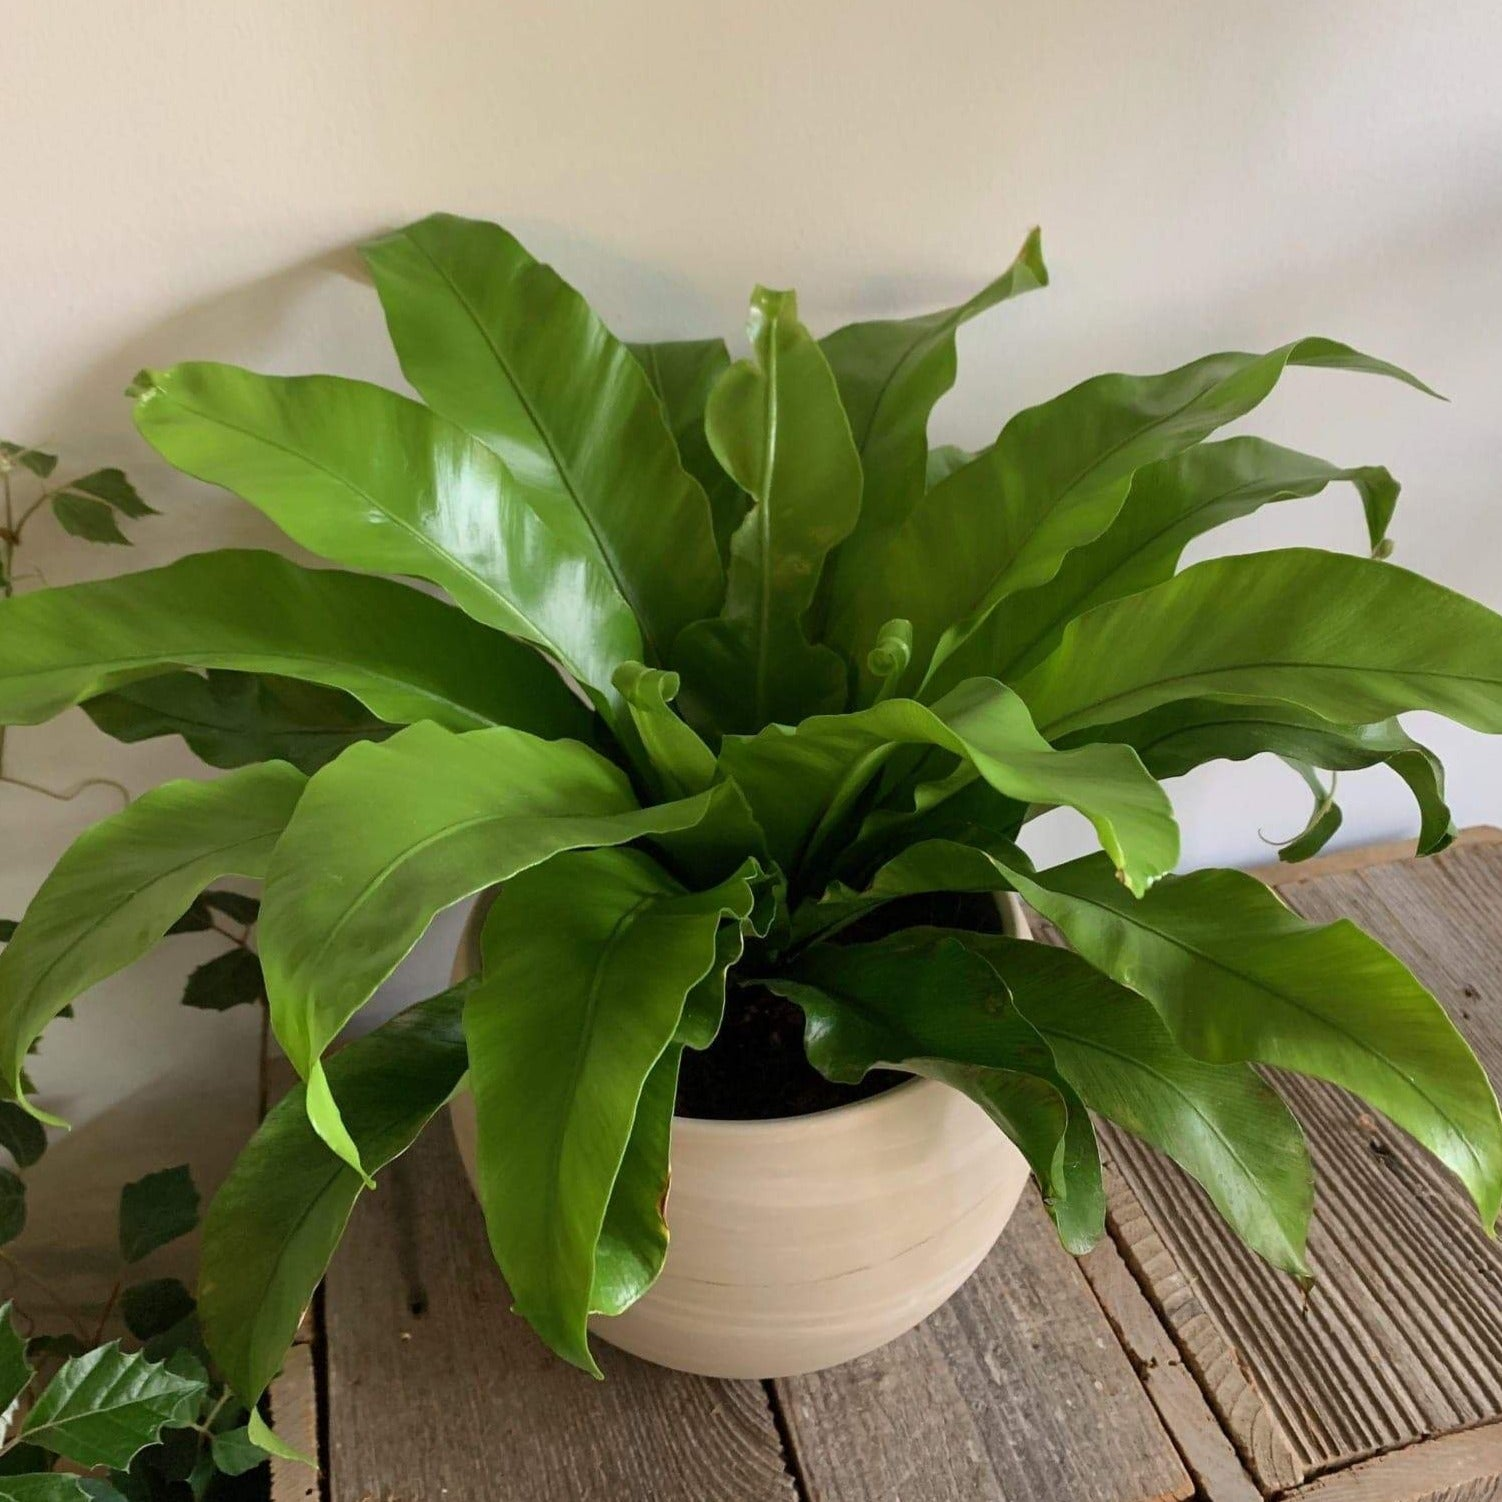 Bird's Nest Fern - Daily floral delivery from Botanica Floral Design